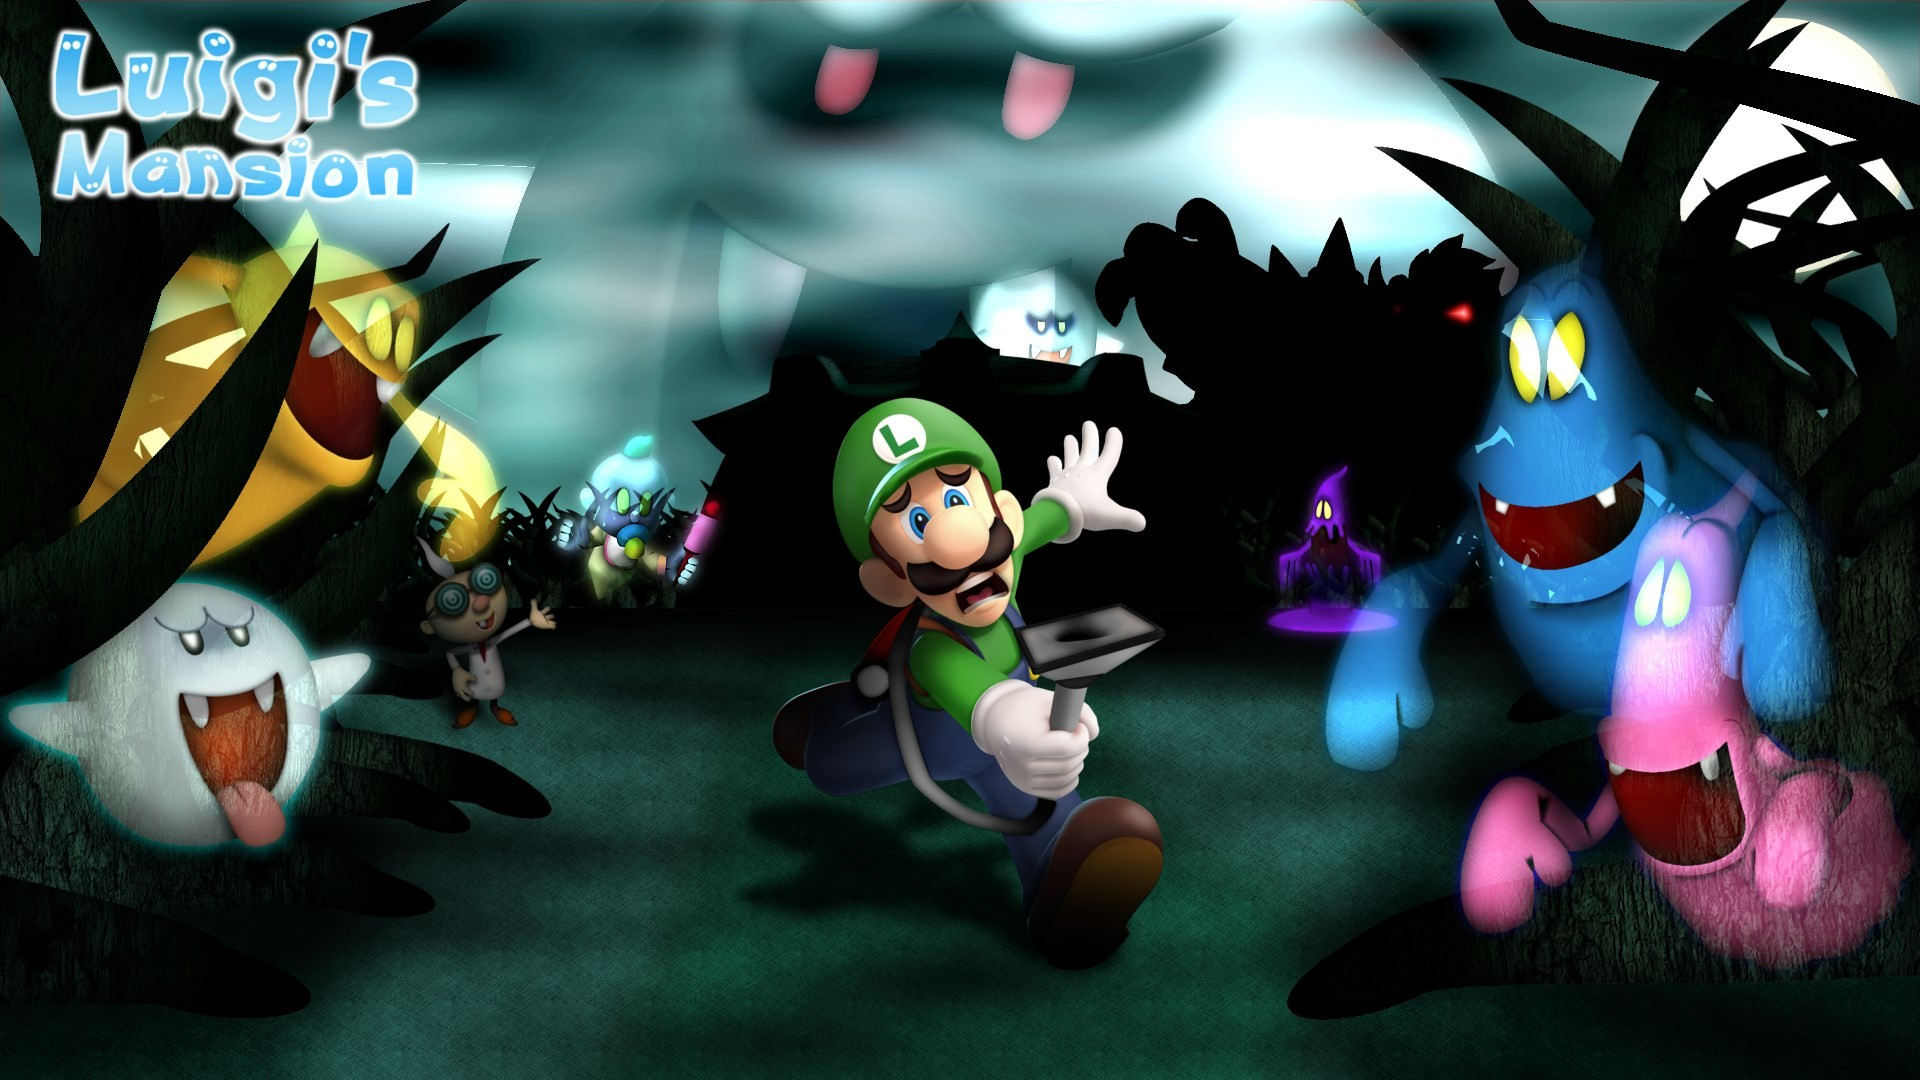 1920x1080 free screensaver wallpapers for luigis mansion, Hopkins Sinclair 2017-03-22